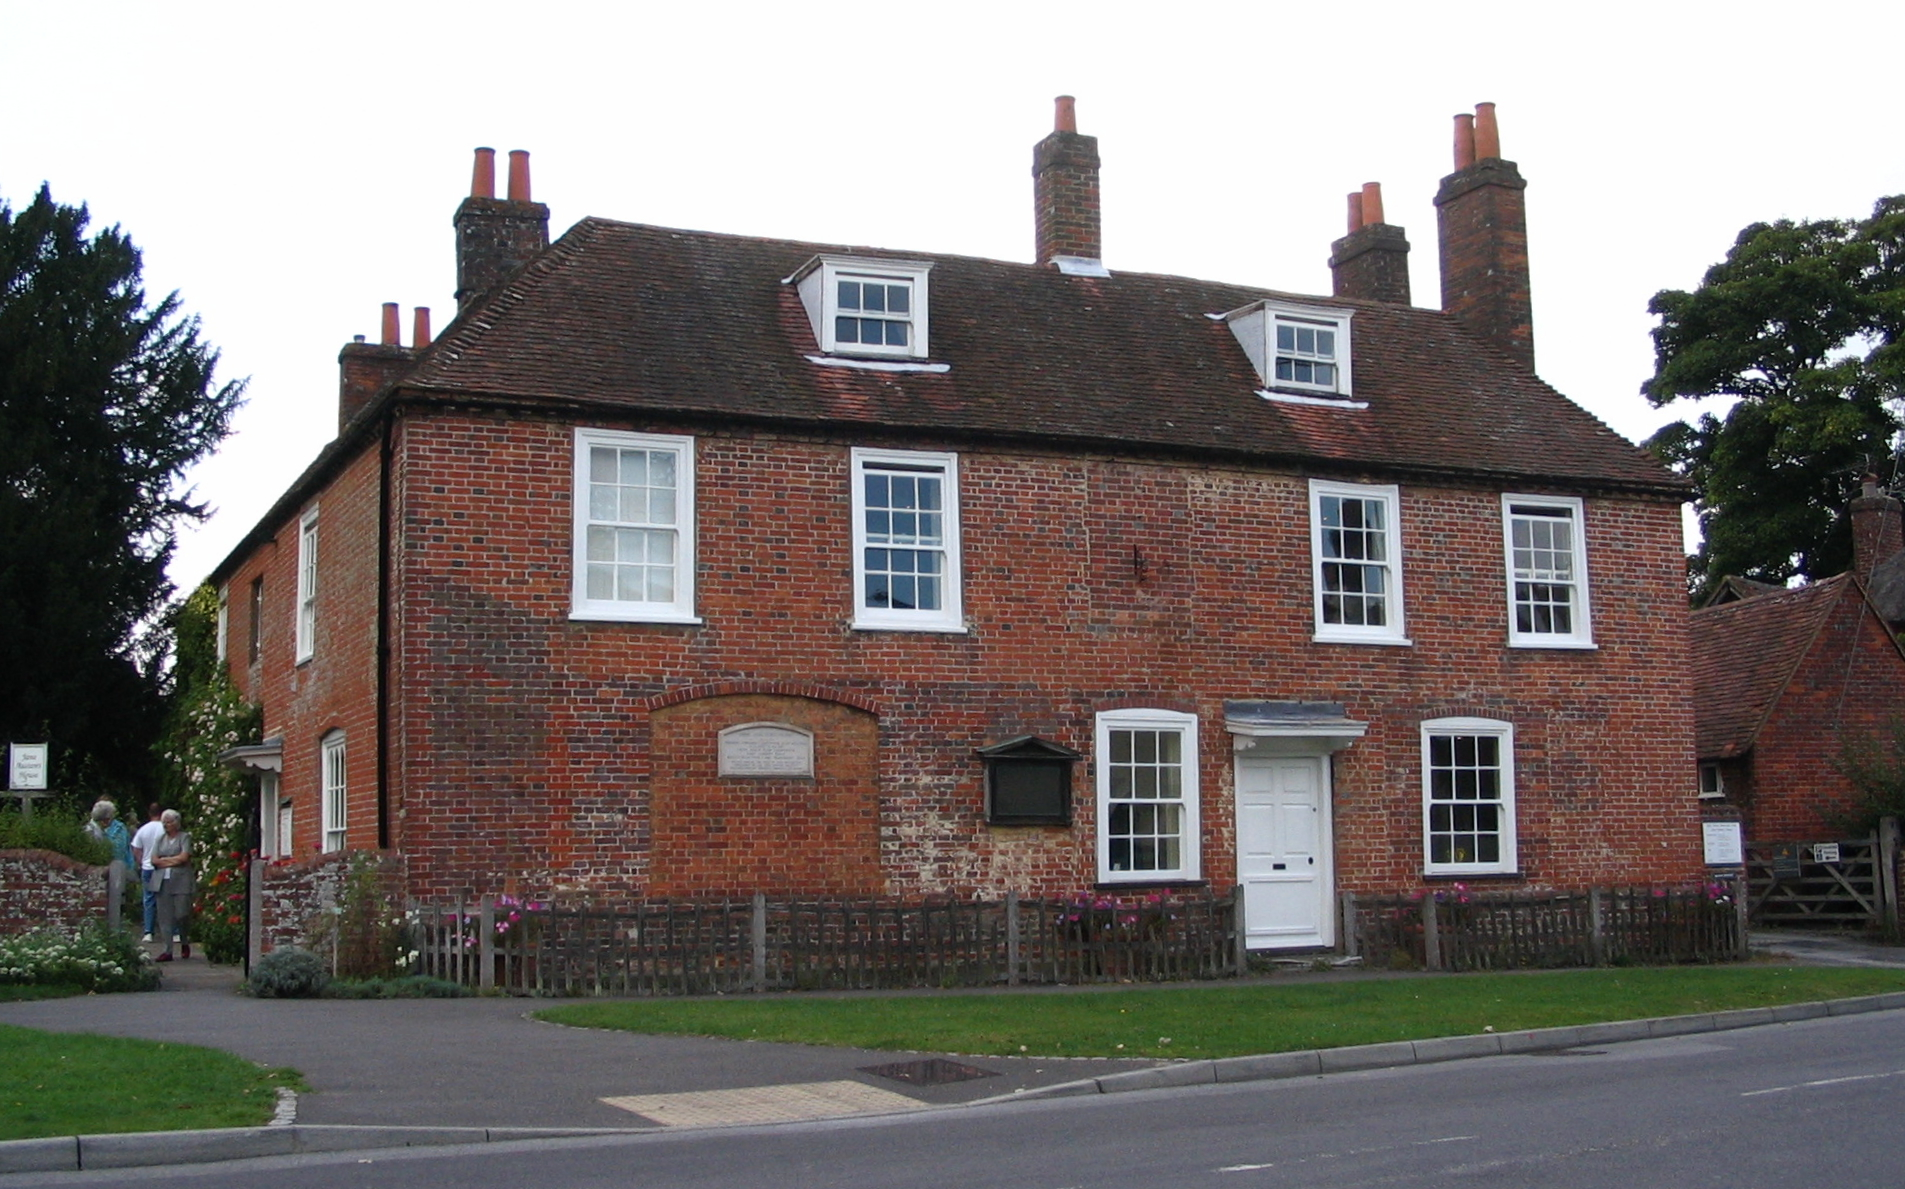 Jane Austen's House, Chawton, Hampshre. By Rudi Riet. CC BY-SA 2.0,via Wikimedia Commons